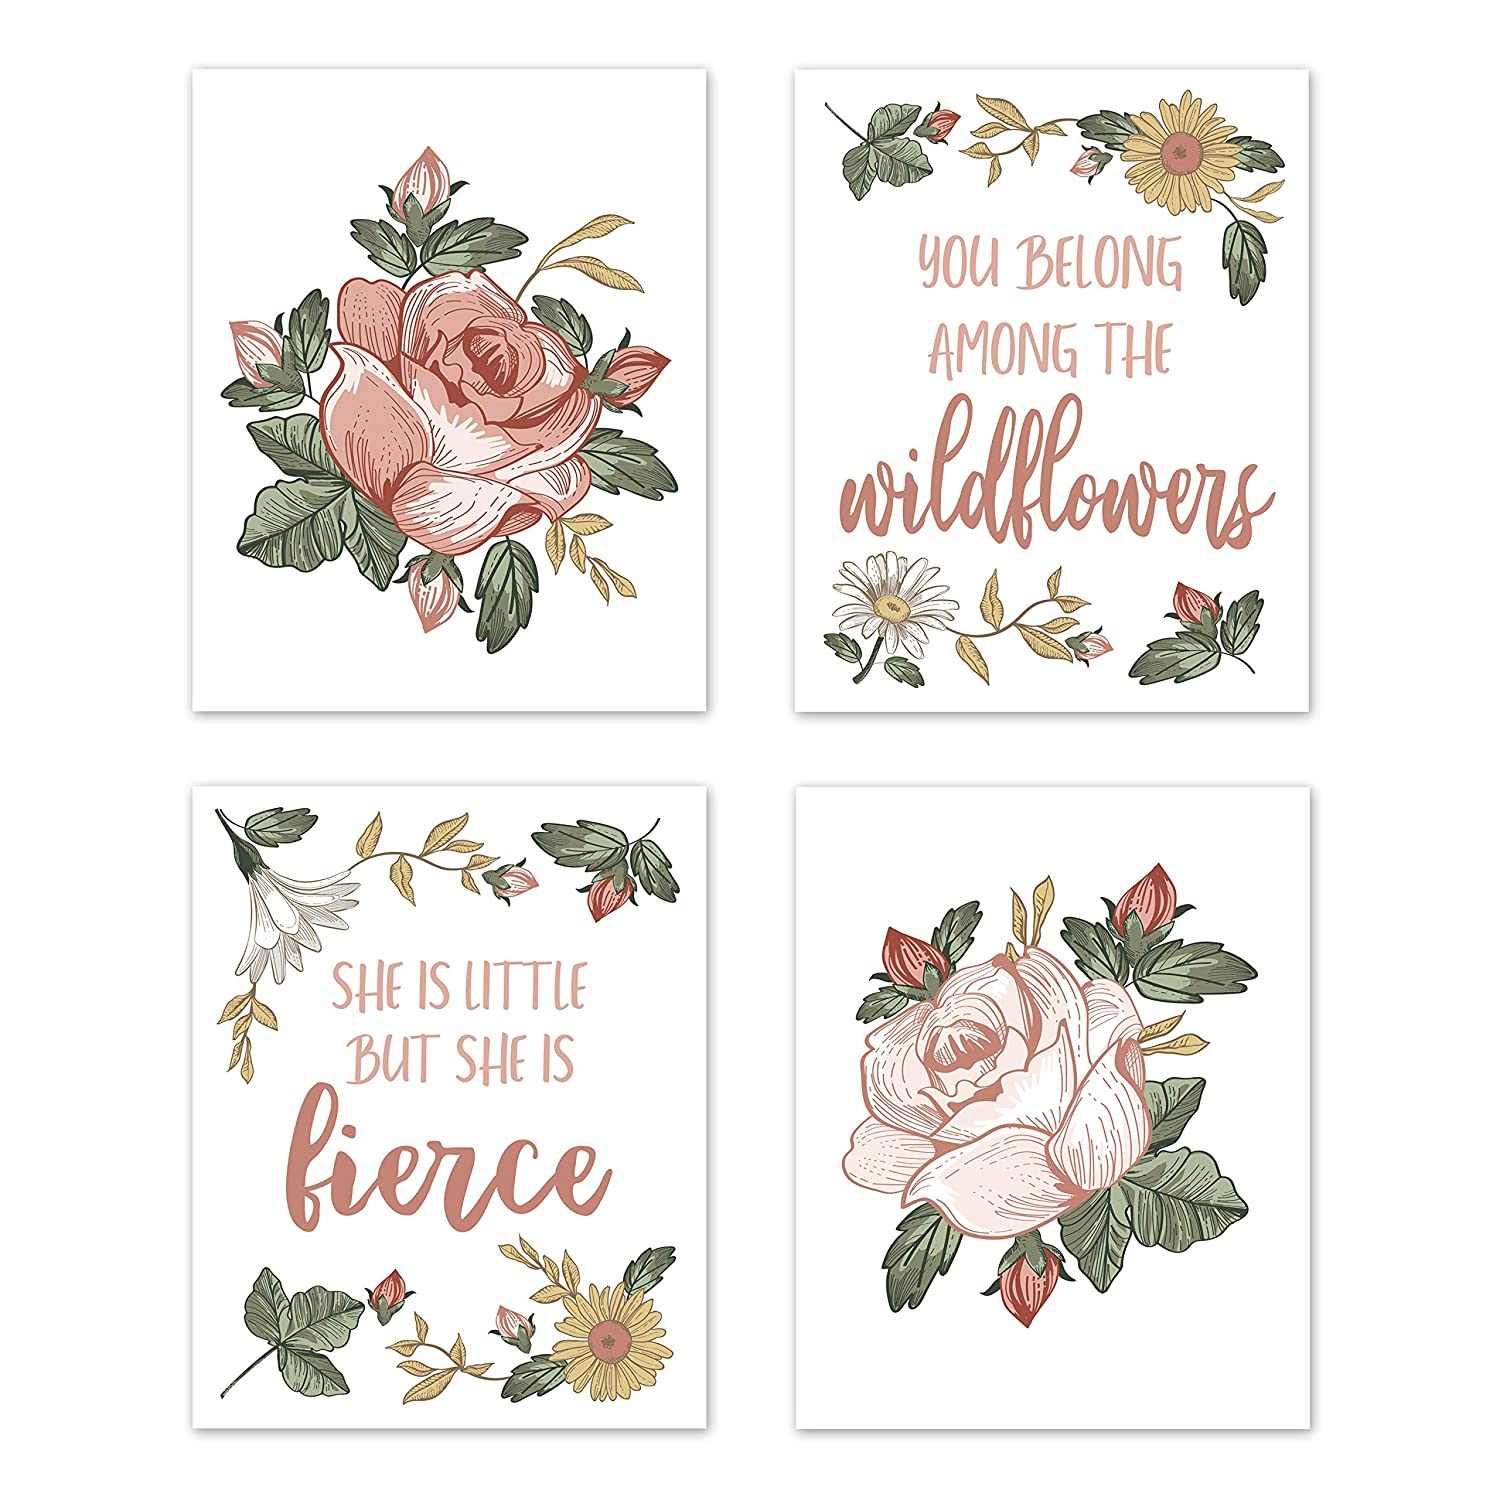 Sweet Jojo Designs Vintage Floral Boho Wall Art Prints Room Decor for Baby, Nursery, and Kids - Set of 4 - Blush Pink, Yellow, Green and White Shabby Chic Rose Flower Farmhouse Wildflower